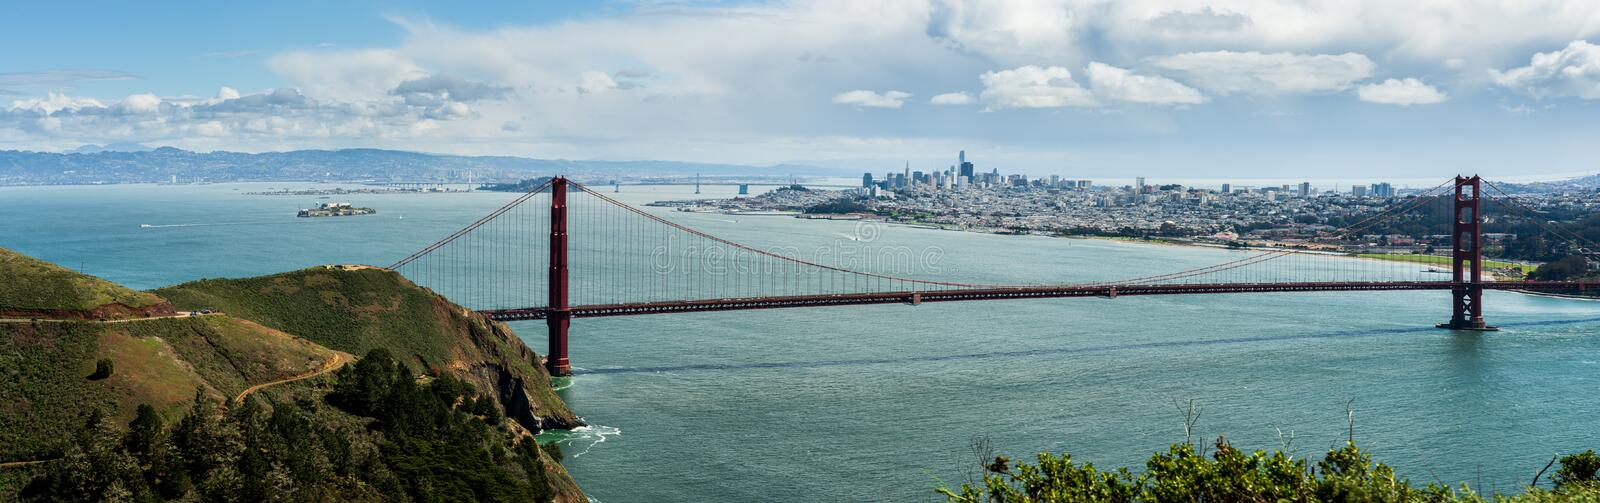 Golden gate bridge com San Fran Skyline imagem de stock